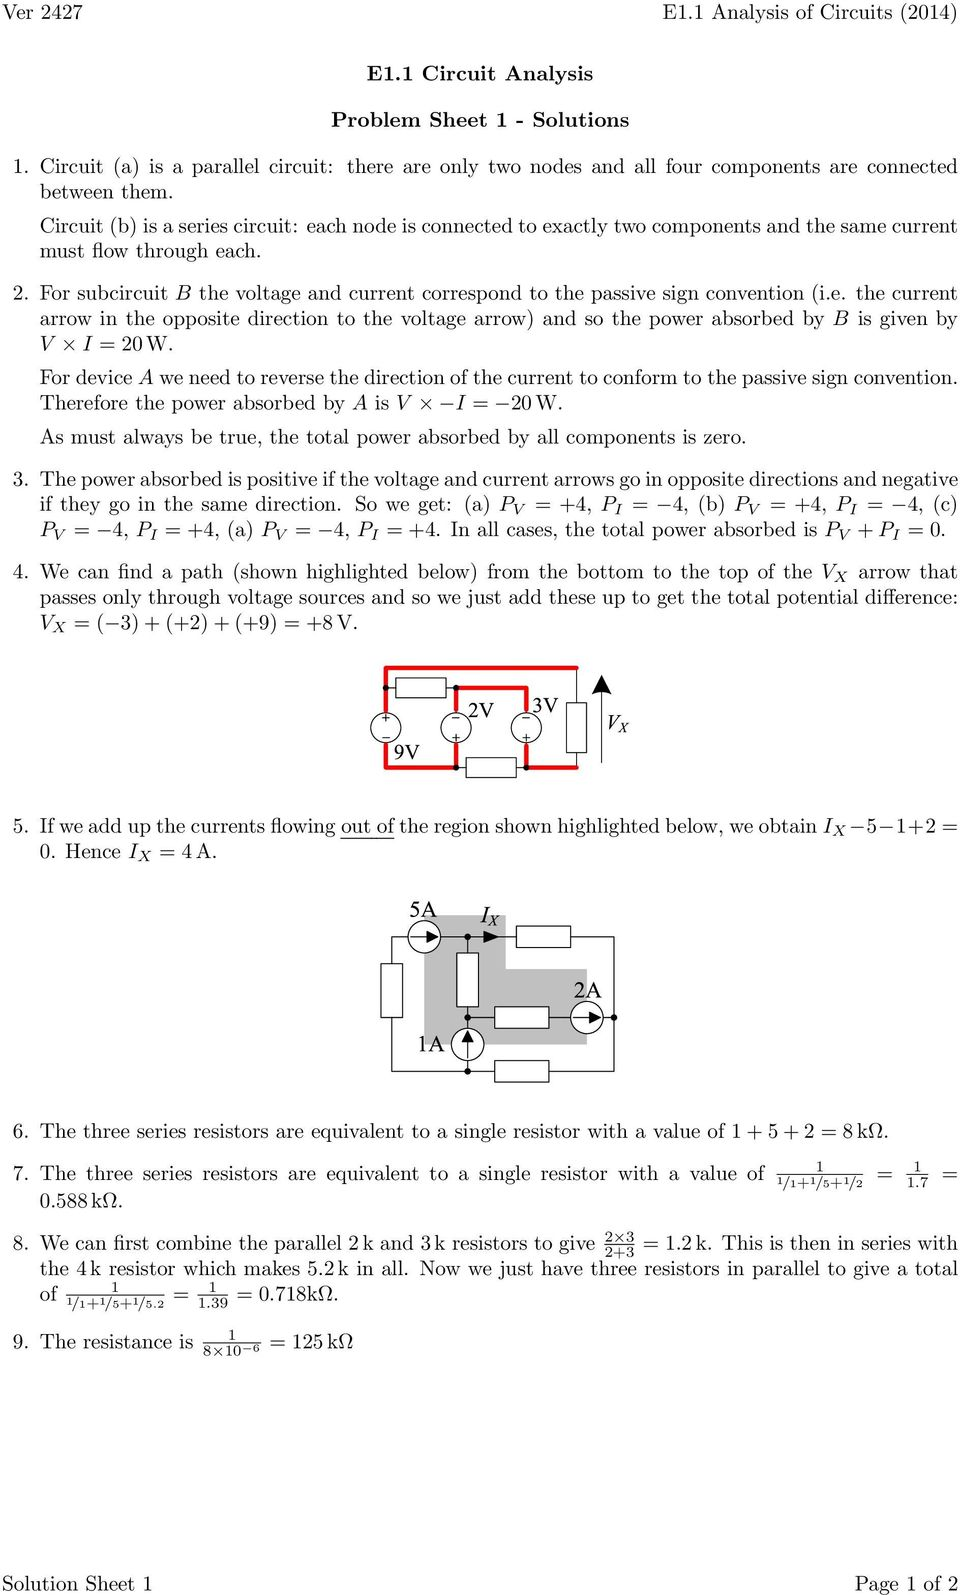 Ver 3537 E11 Analysis Of Circuits 2014 Circuit Electrical Engineering Tutorials Thevenin39s And Norton39s Theorem For Subcircuit B The Voltage Current Correspond To Passive Sign Convention Ie